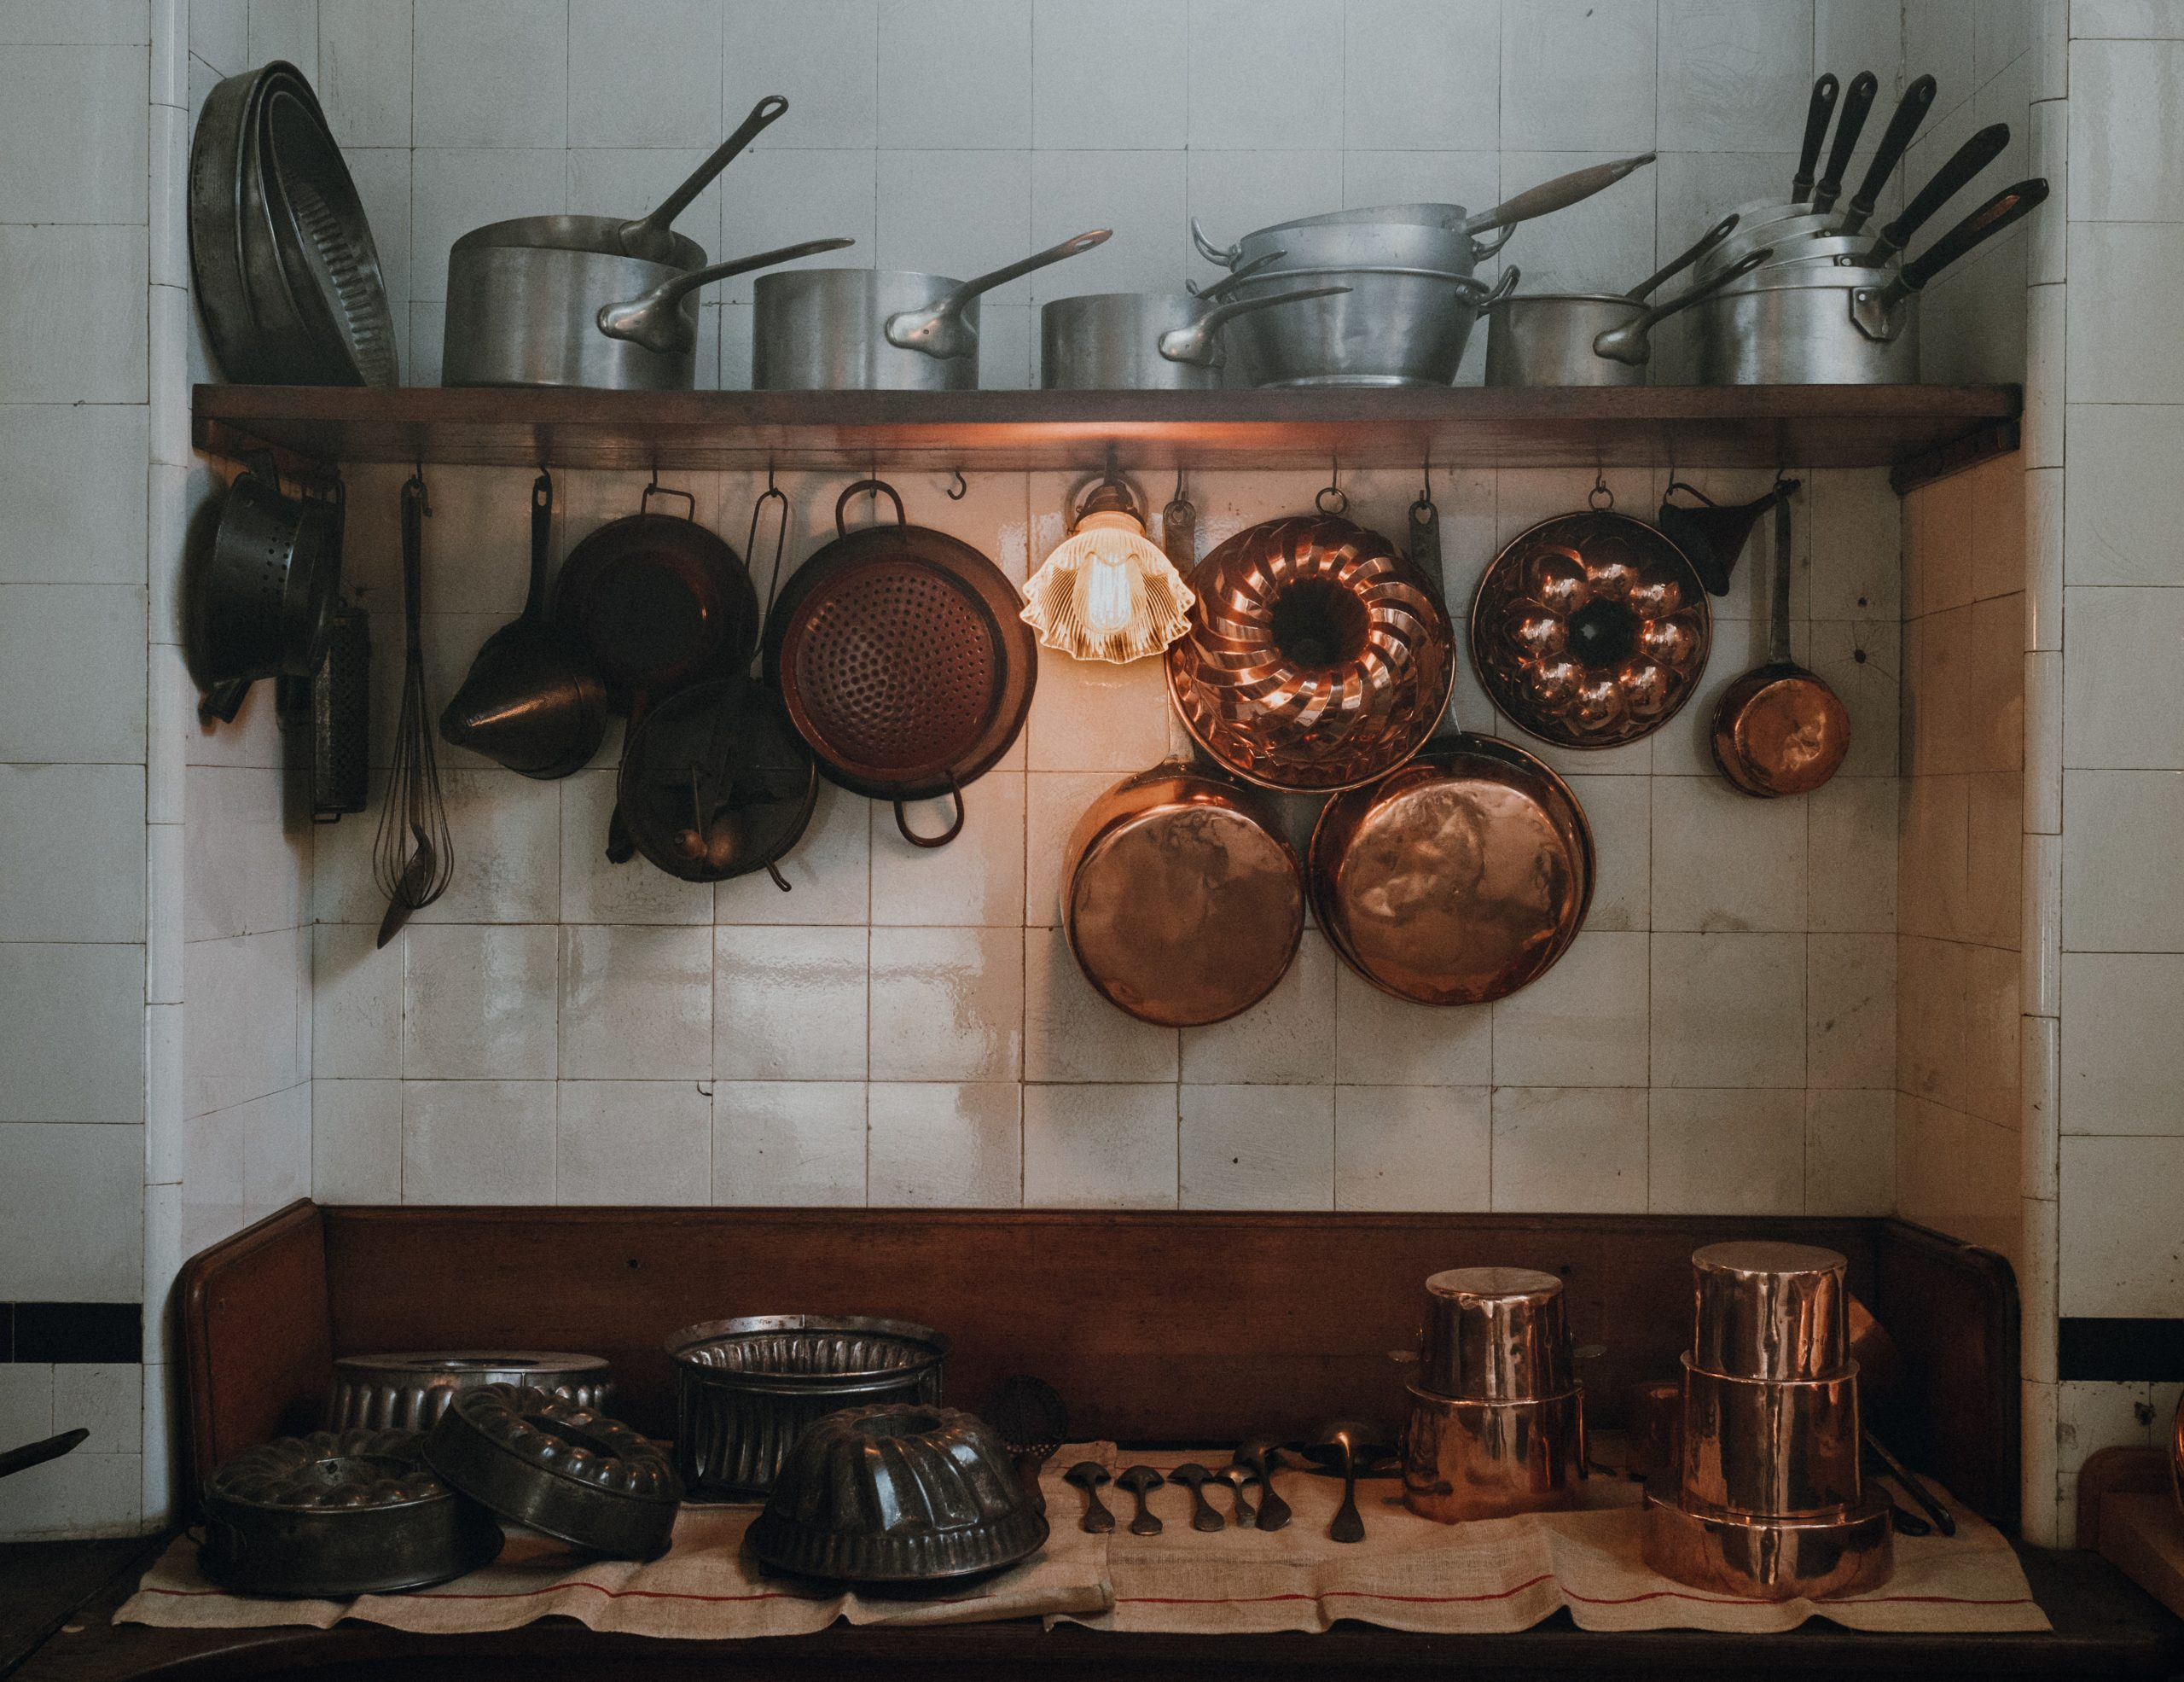 French kitchen with copper pots and pans